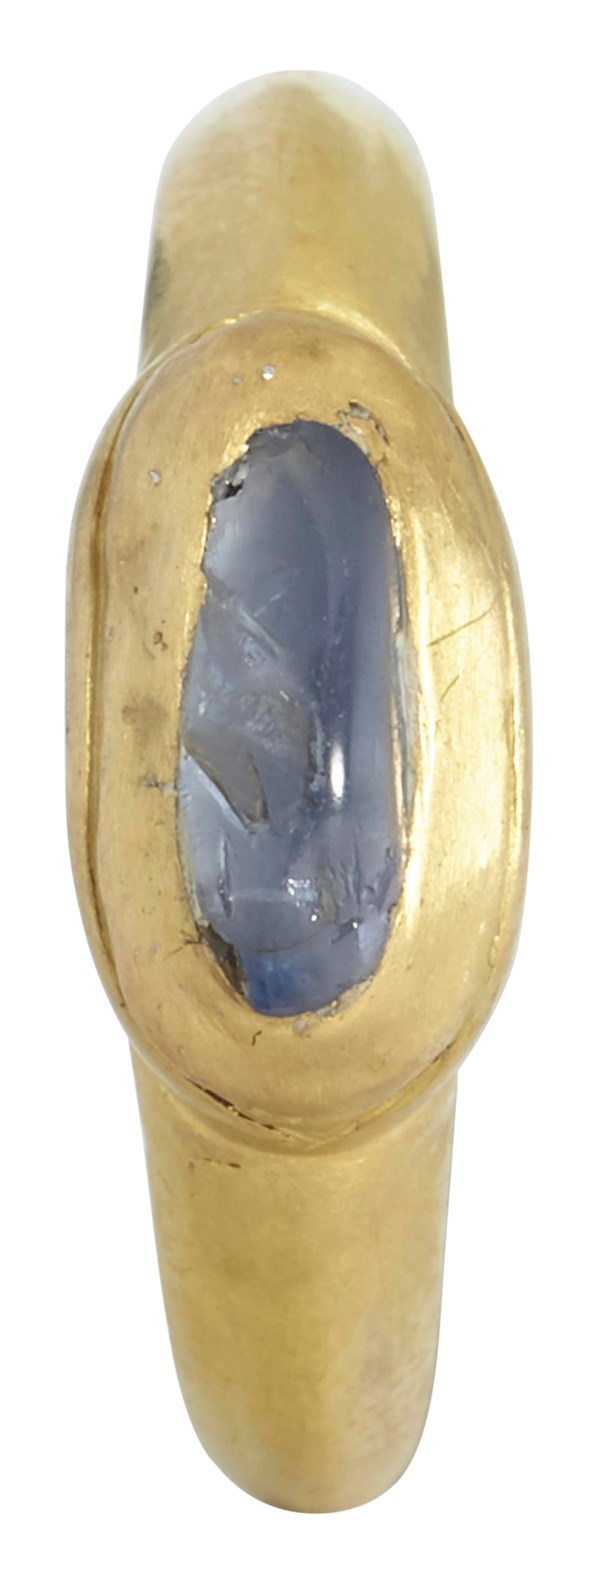 A CENTRAL ASIAN GOLD AND SAPPHIRE FINGER RING